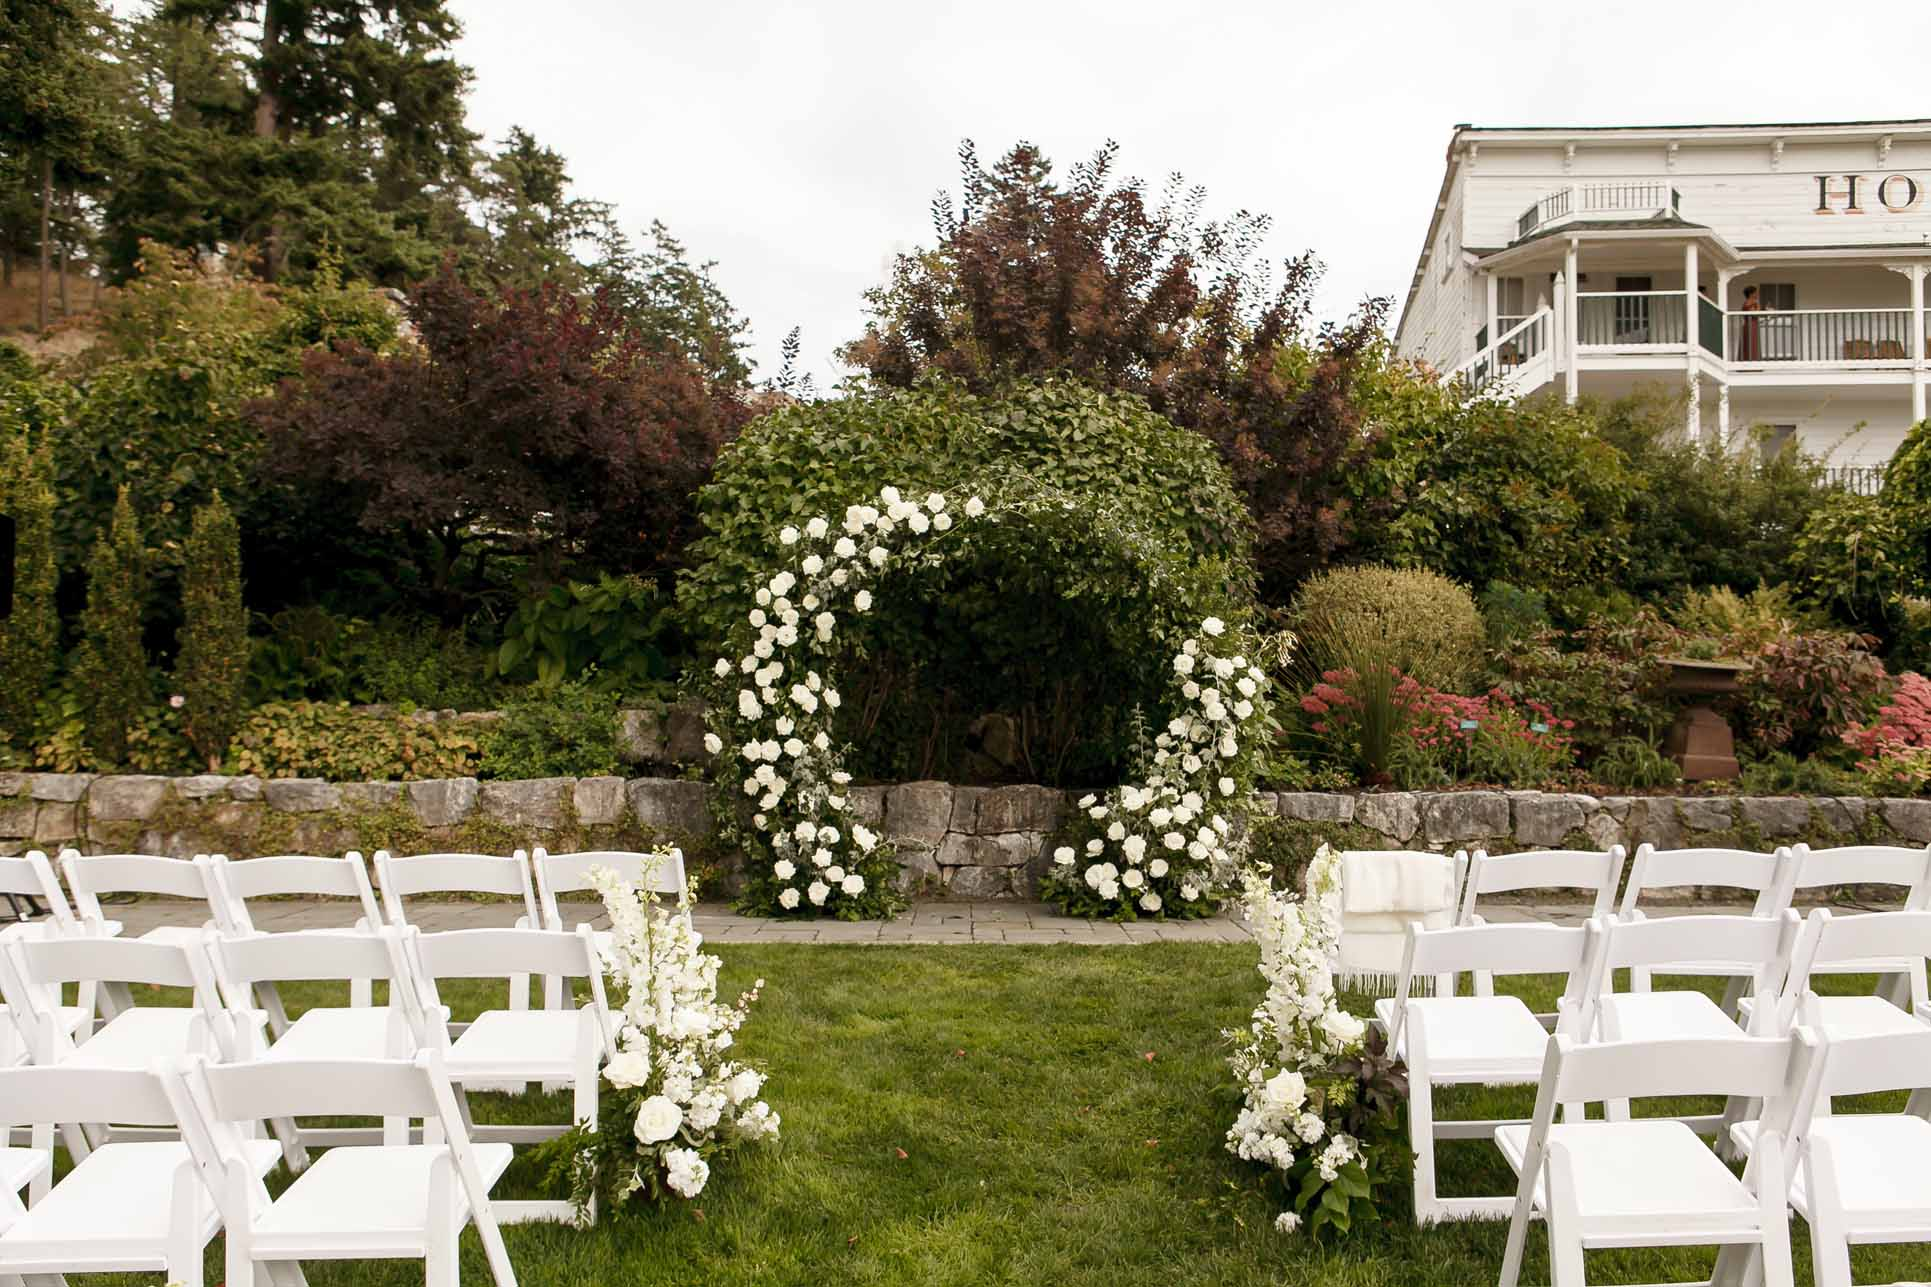 Outdoor wedding ceremony at Roche Harbor, with white flower arch of white roses and greenery